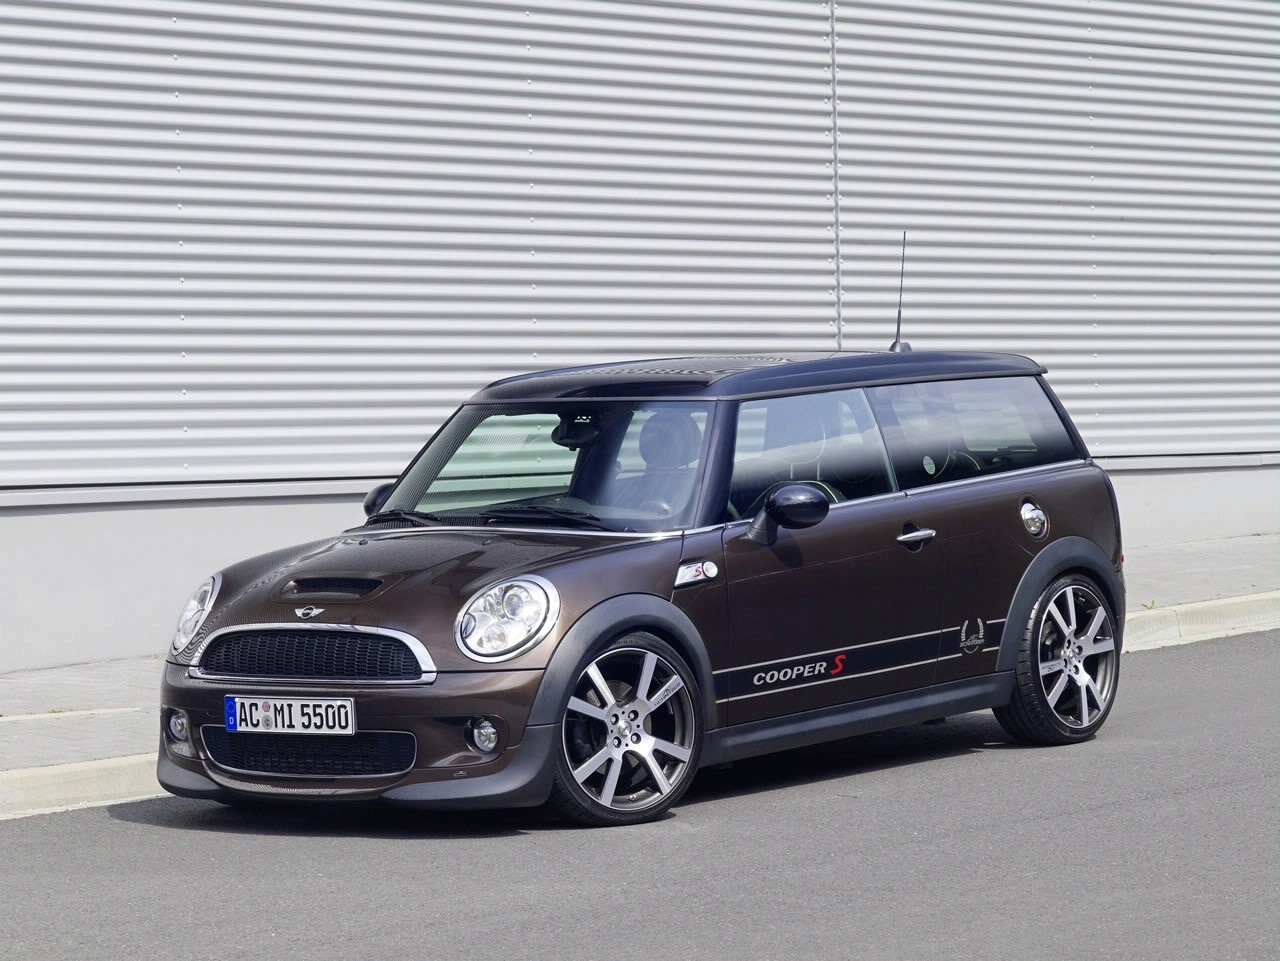 mini clubman cooper s technical details history photos on better parts ltd. Black Bedroom Furniture Sets. Home Design Ideas